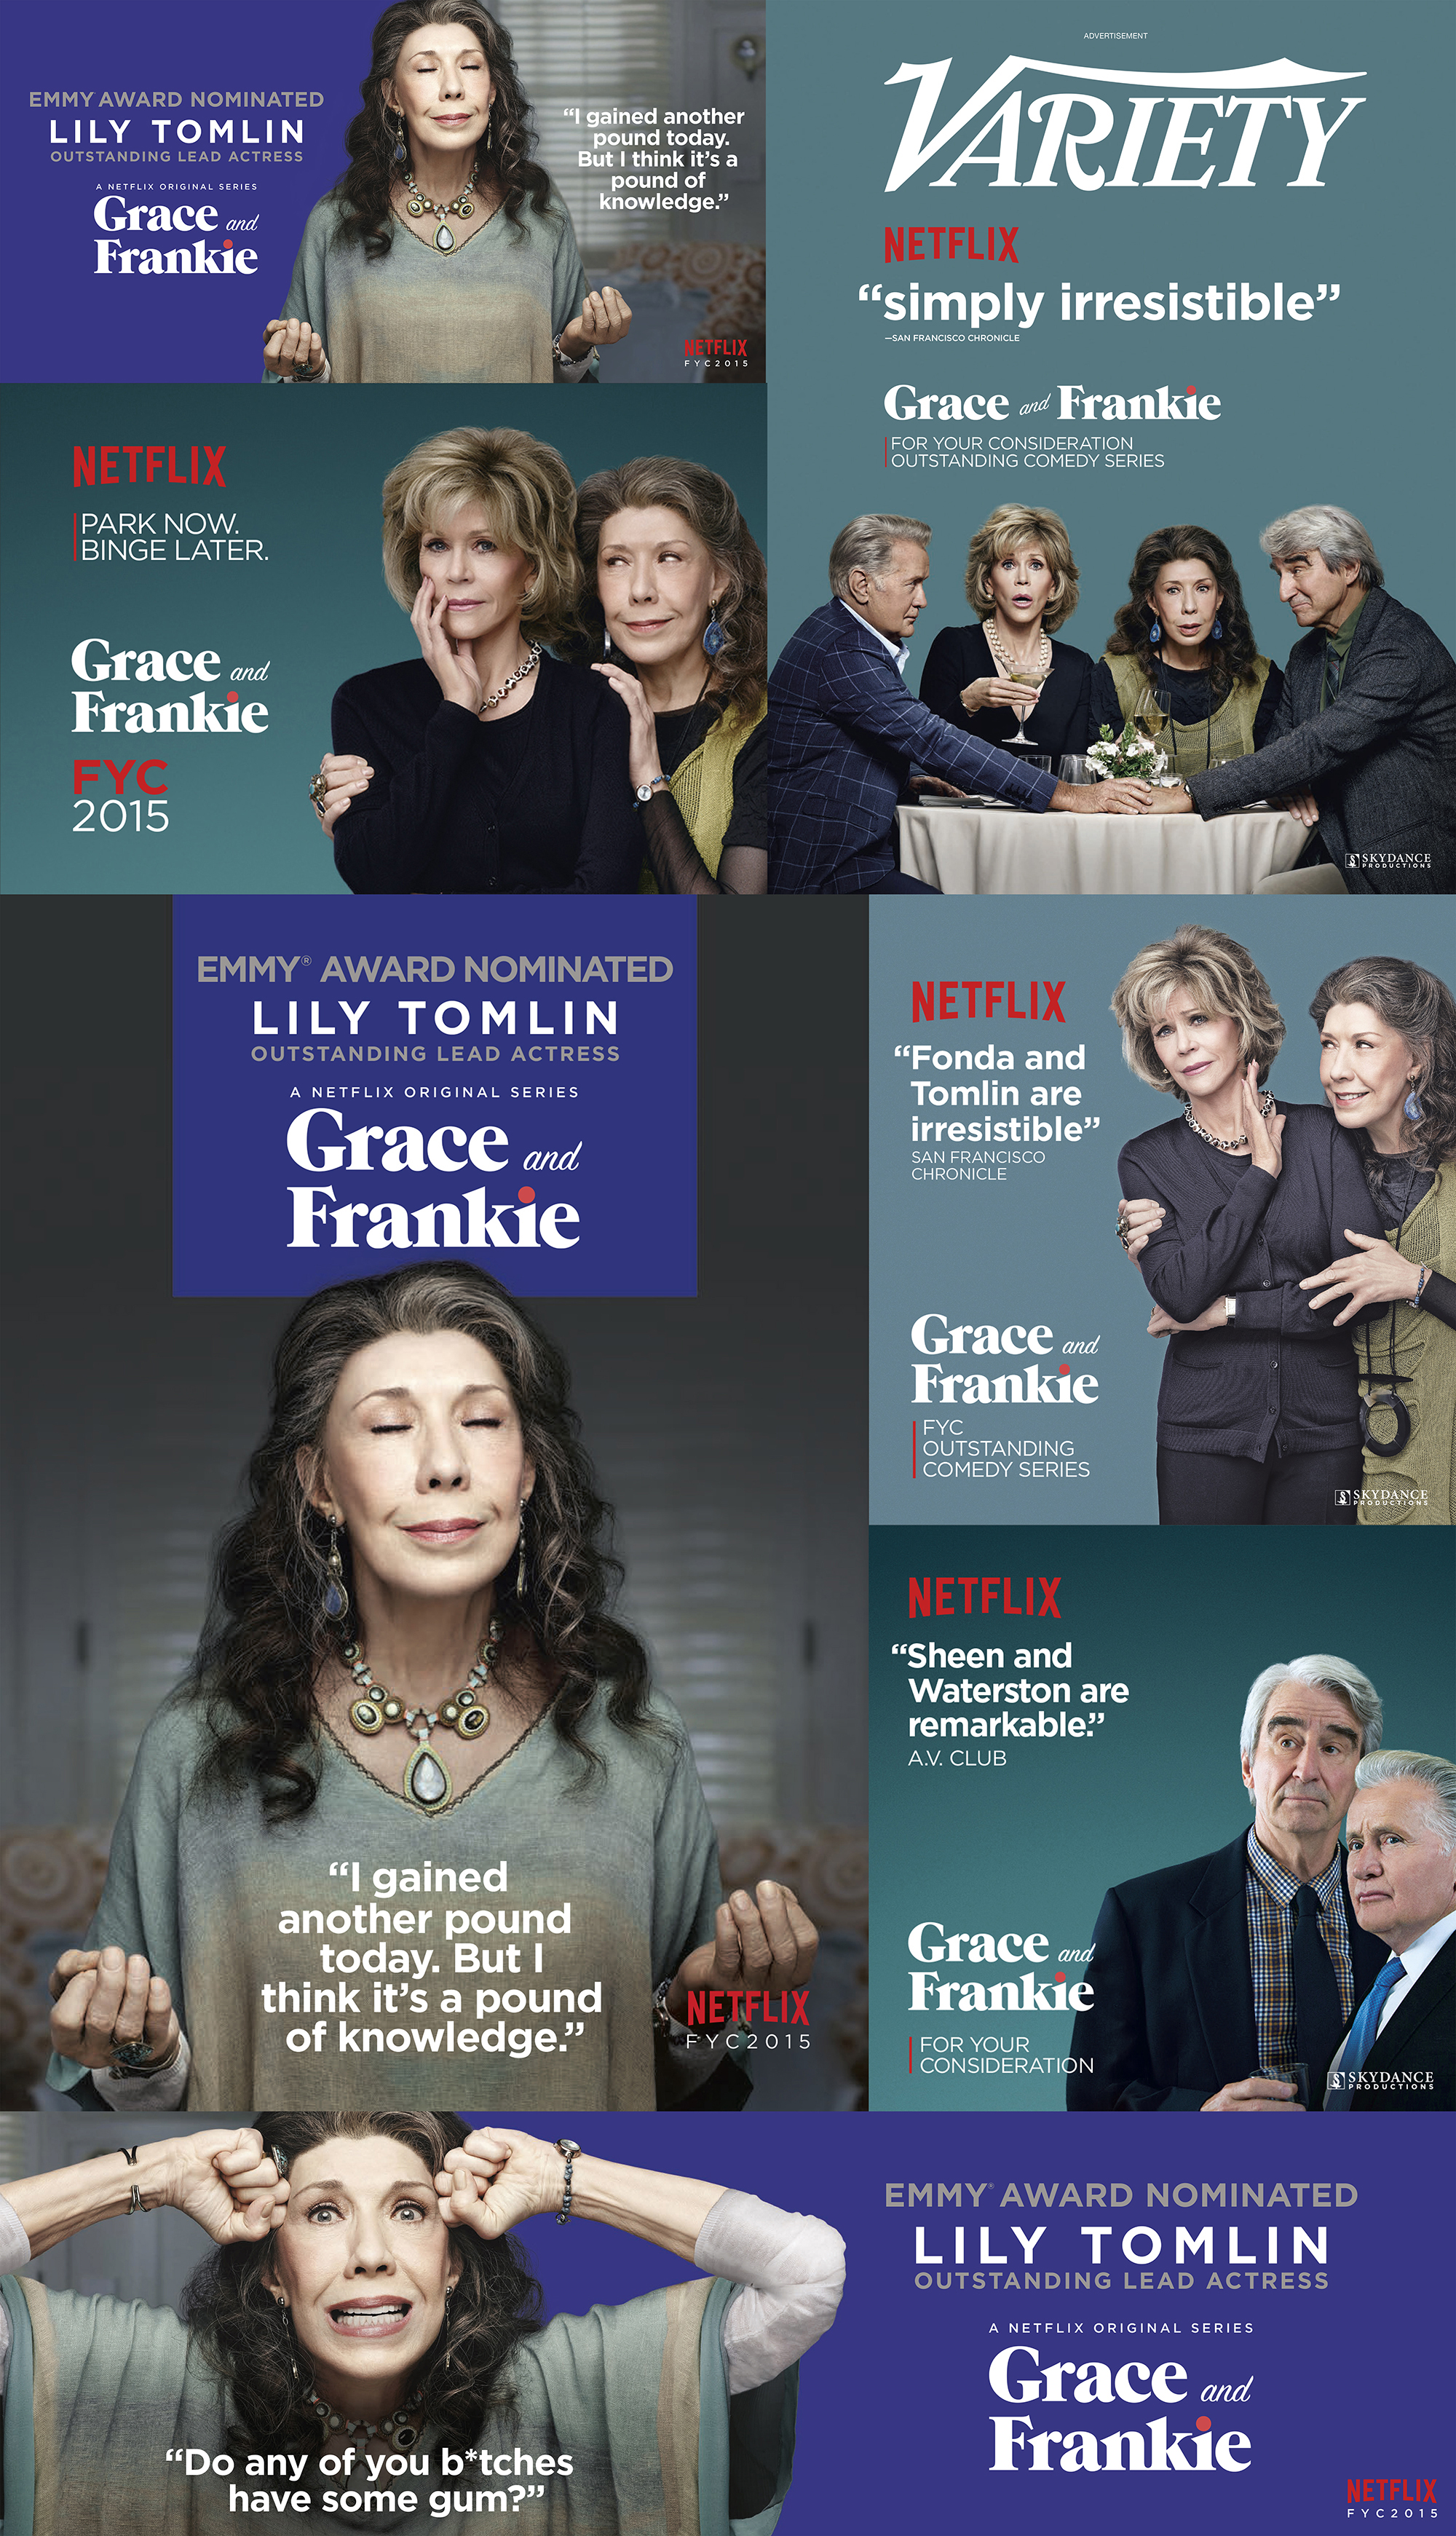 gaf_grace_and_frankie_prod_design_grid